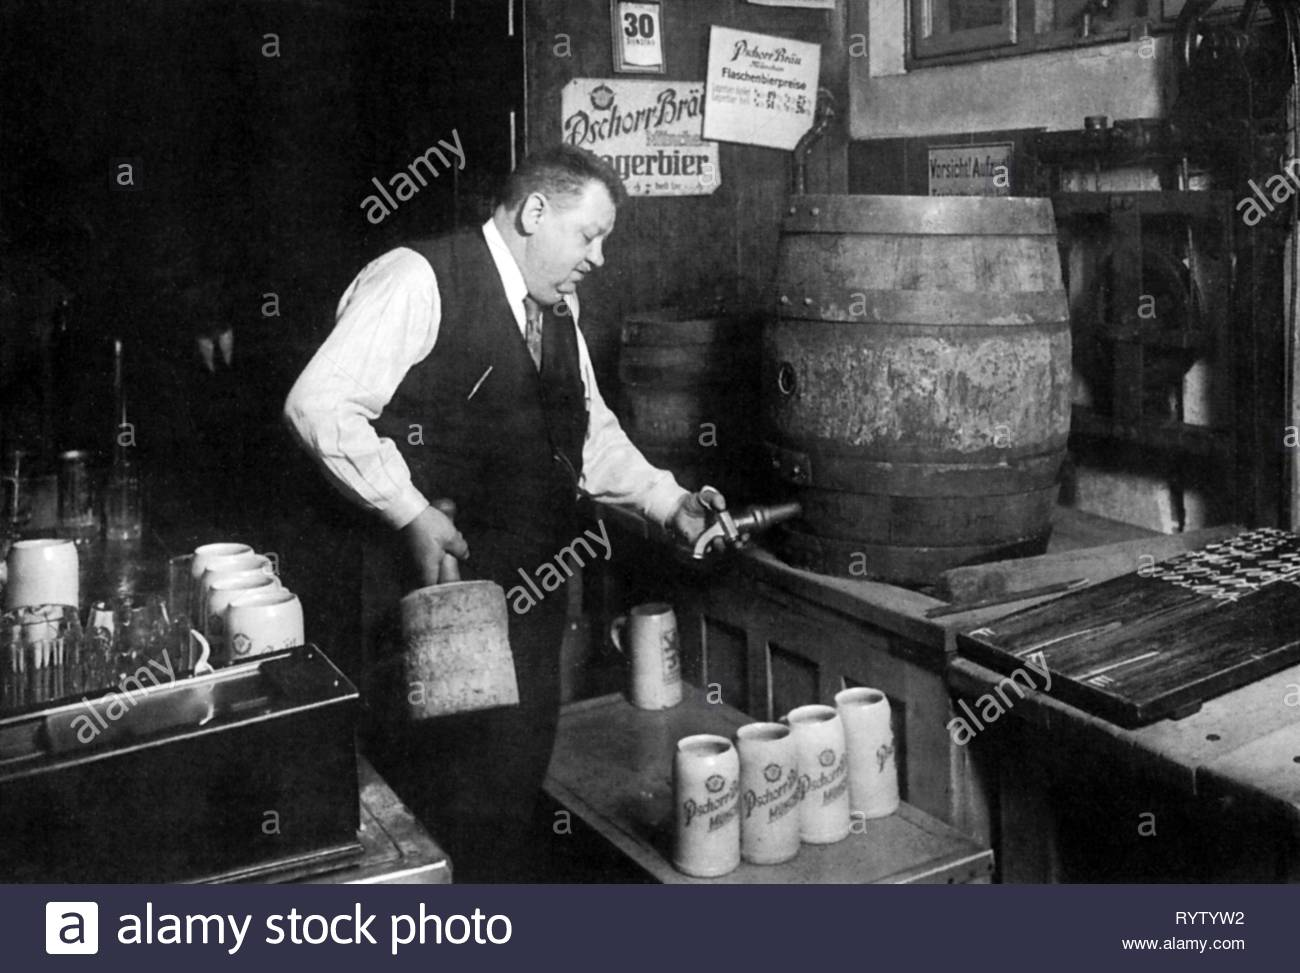 alcohol, beer, Toni Ferstl, host of the 'Donisl', tapping a barrel, Munich, Germany, circa 1930, Additional-Rights-Clearance-Info-Not-Available - Stock Image